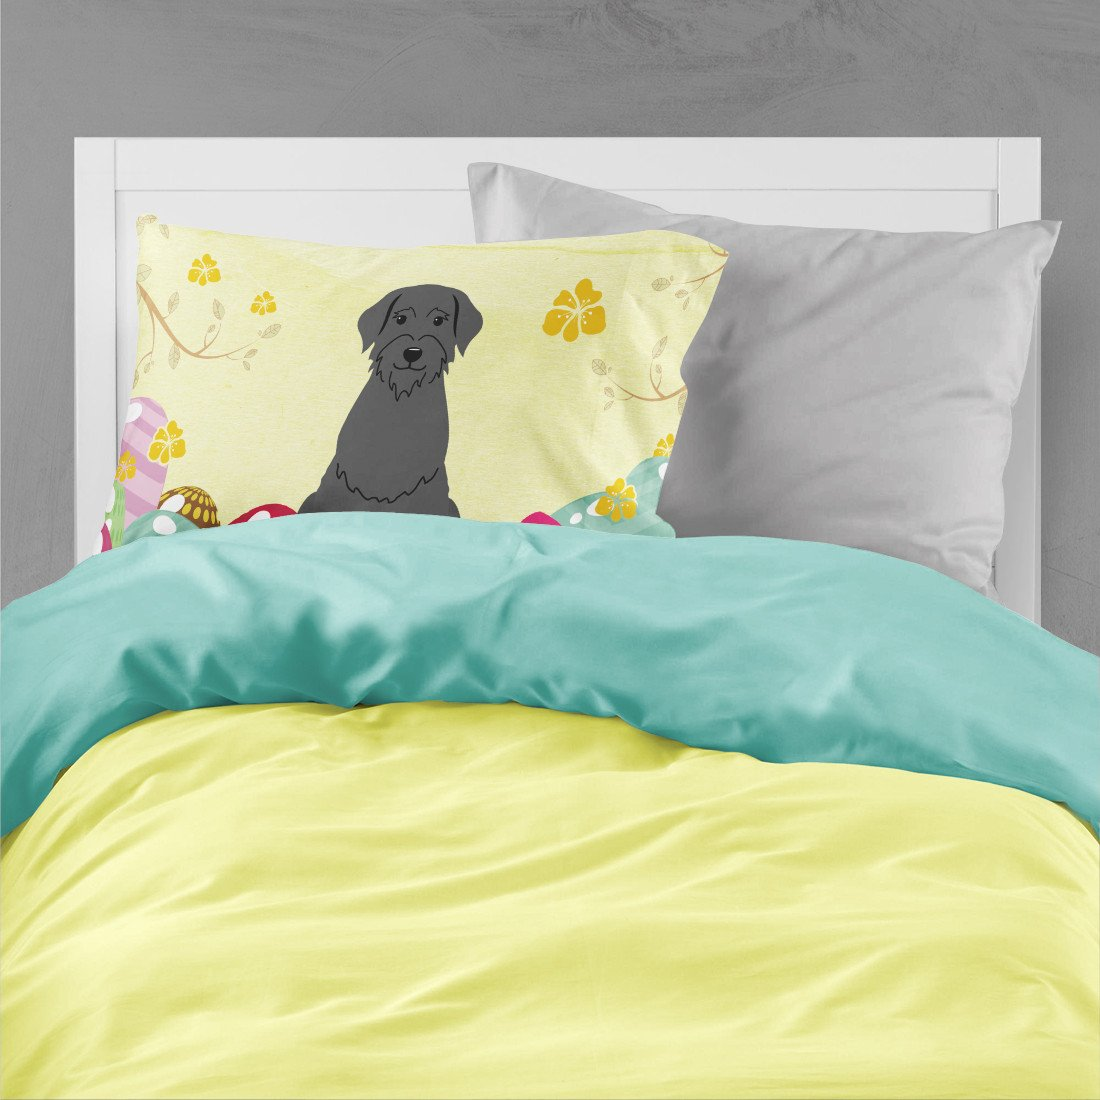 Easter Eggs Giant Schnauzer Fabric Standard Pillowcase BB6066PILLOWCASE by Caroline's Treasures